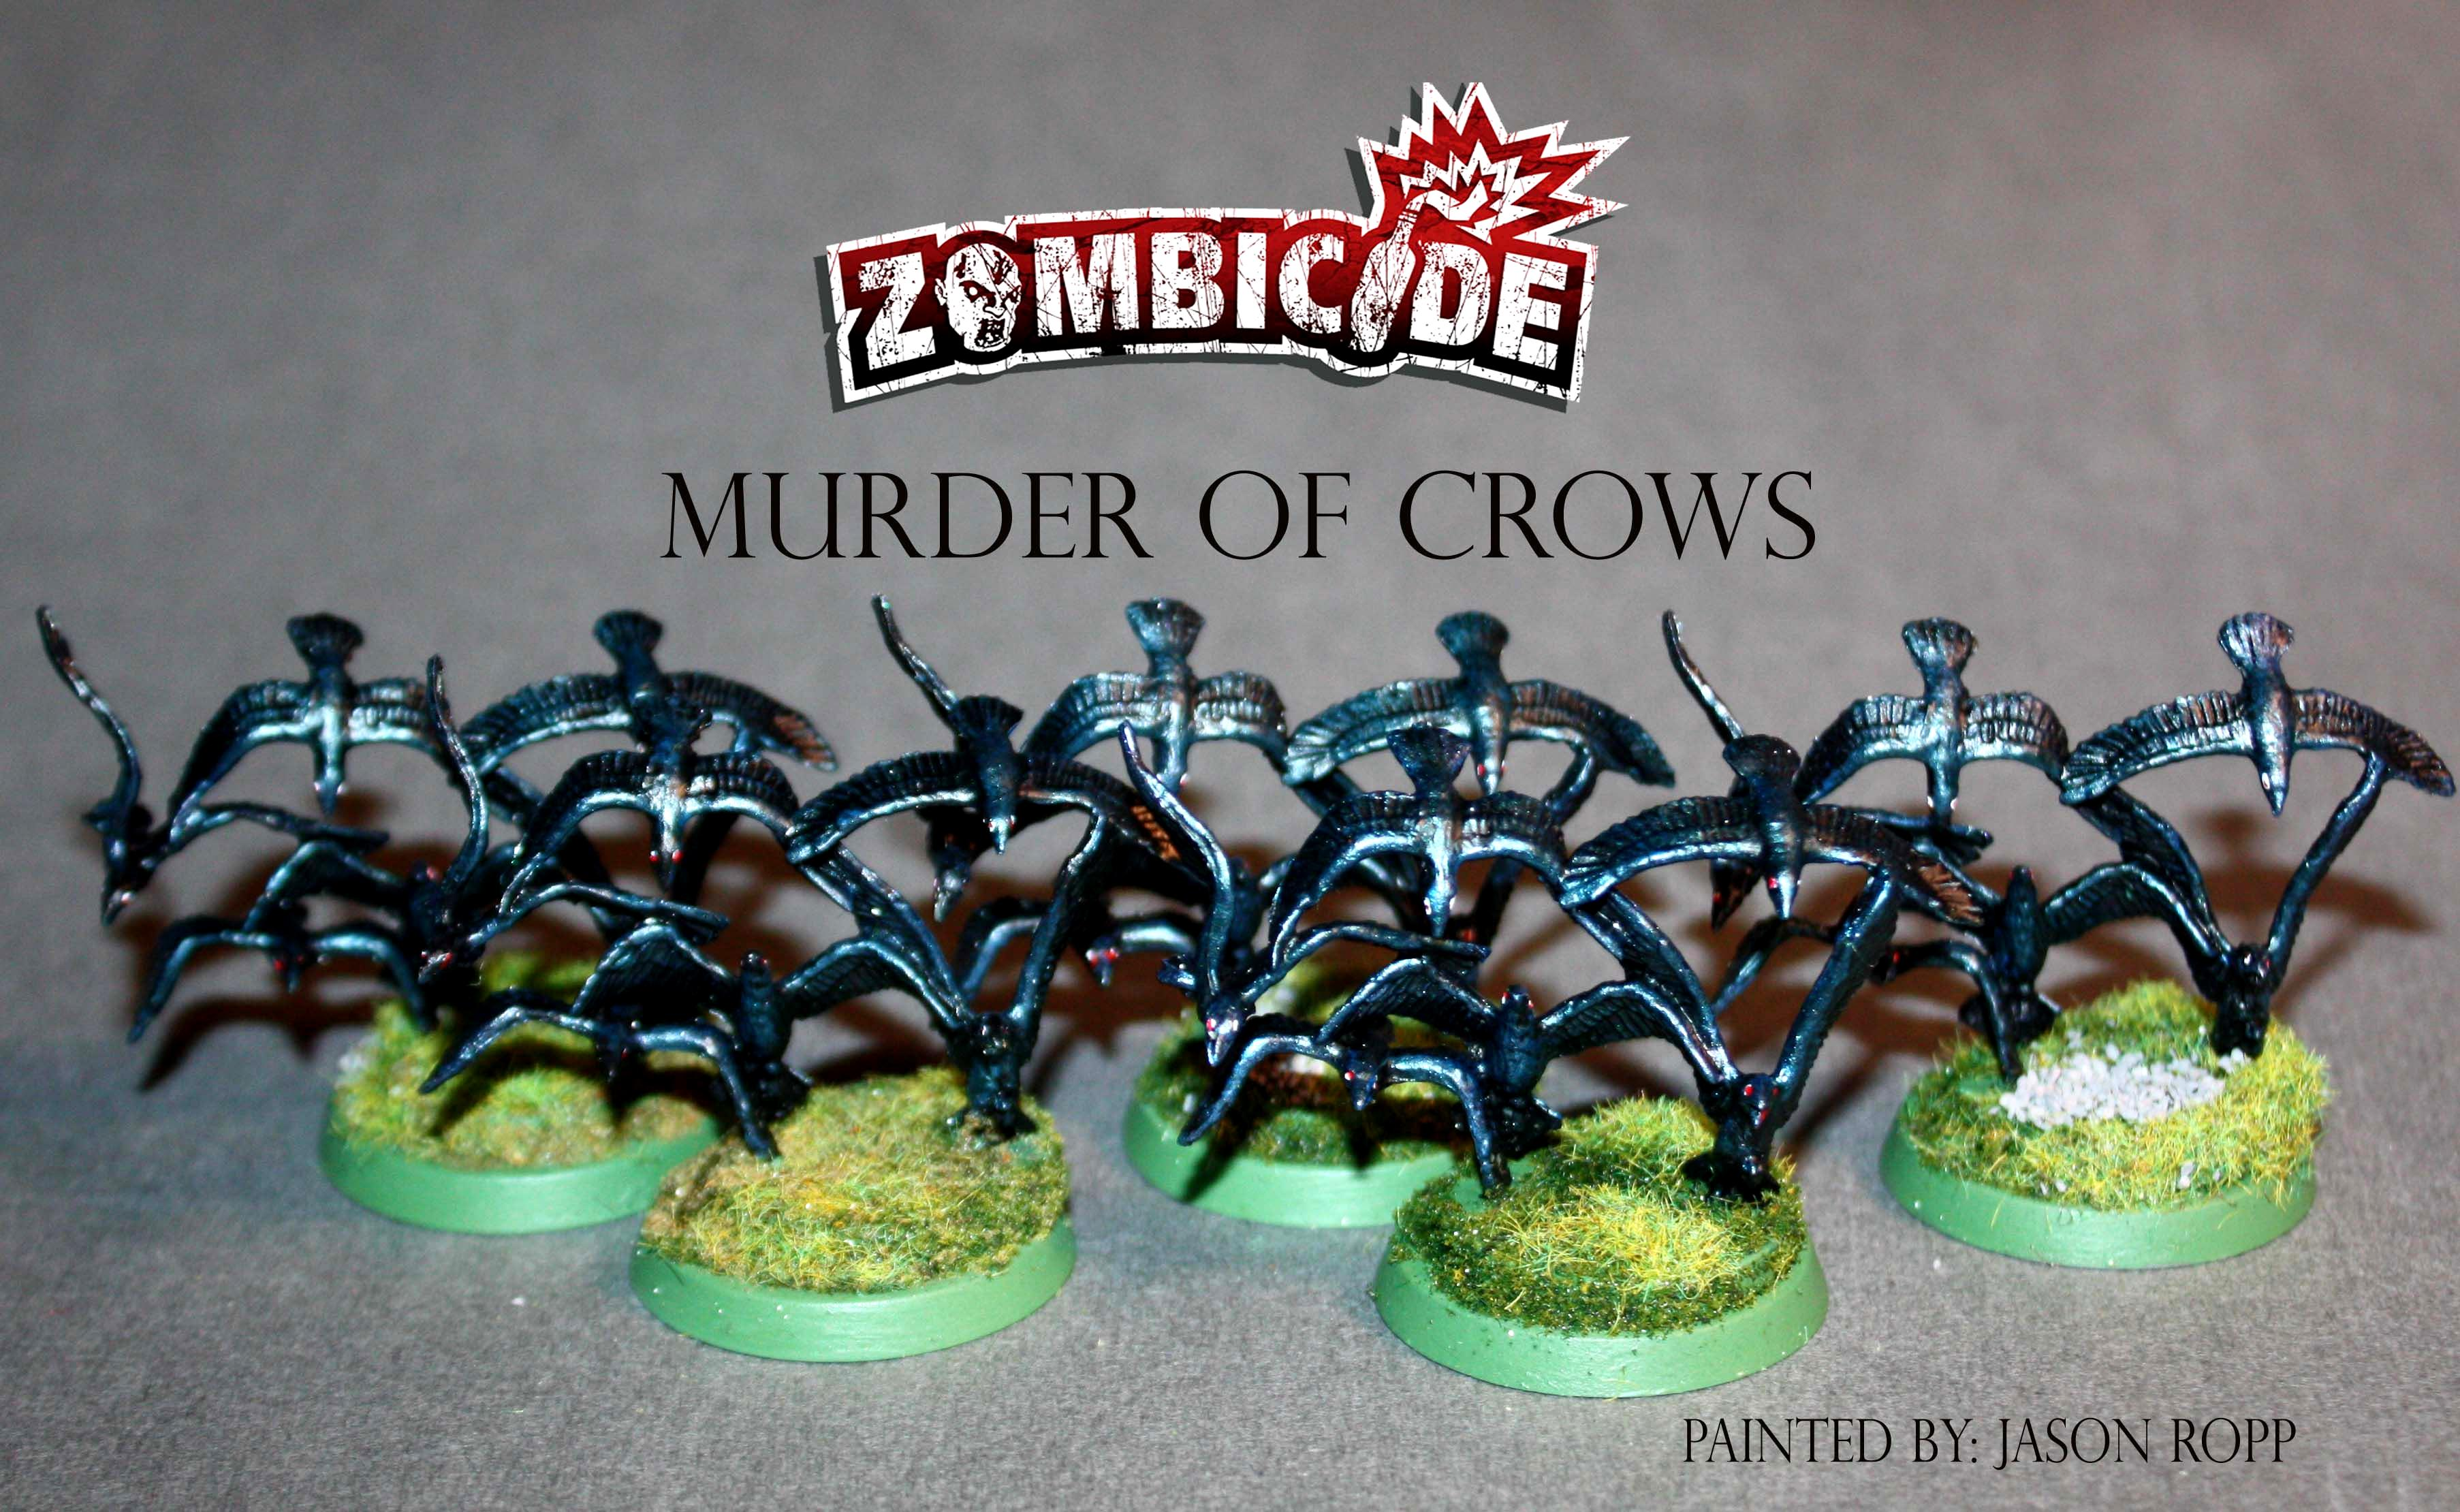 28mm, 32mm, Abominaton, All Out War, Andrea, Attack, Battle, Cool Mini Or Not, Crows, Game, Gamenight, Michone, Miniature, Miniatures, Murder, Neegan, Ral Partha, Ravens, Rick, Skirmish, Survivors, Undead, Walkers, Walking Dead, Wargame, Wargamer, Wargames Factory, Zombicide, Zombie, Zombivors